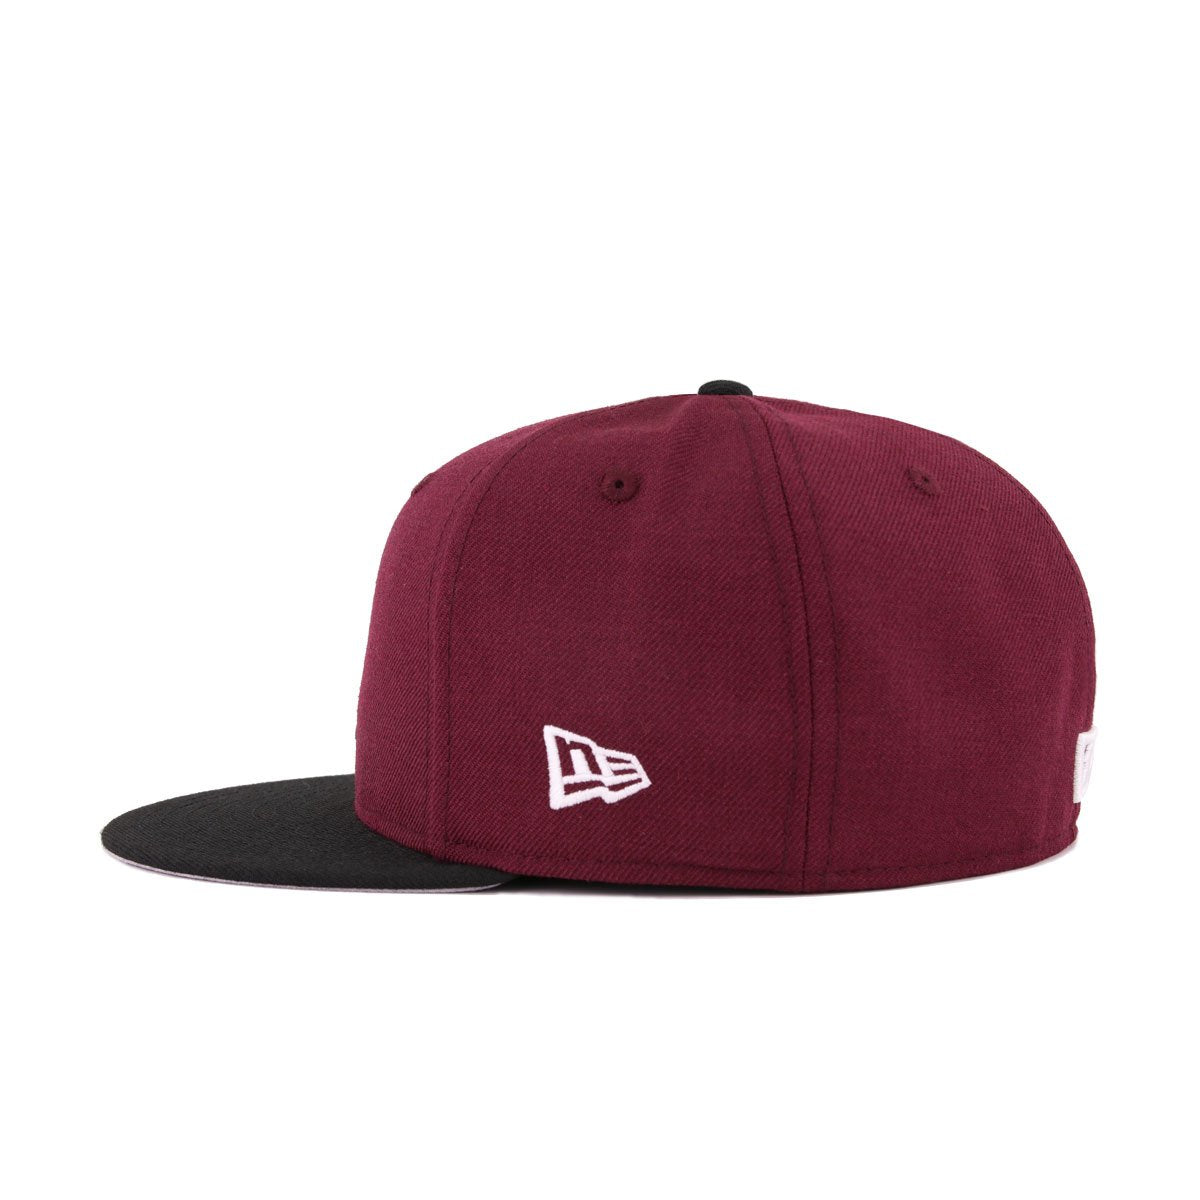 Los Angeles Dodgers Maroon Black New Era 59Fifty Fitted